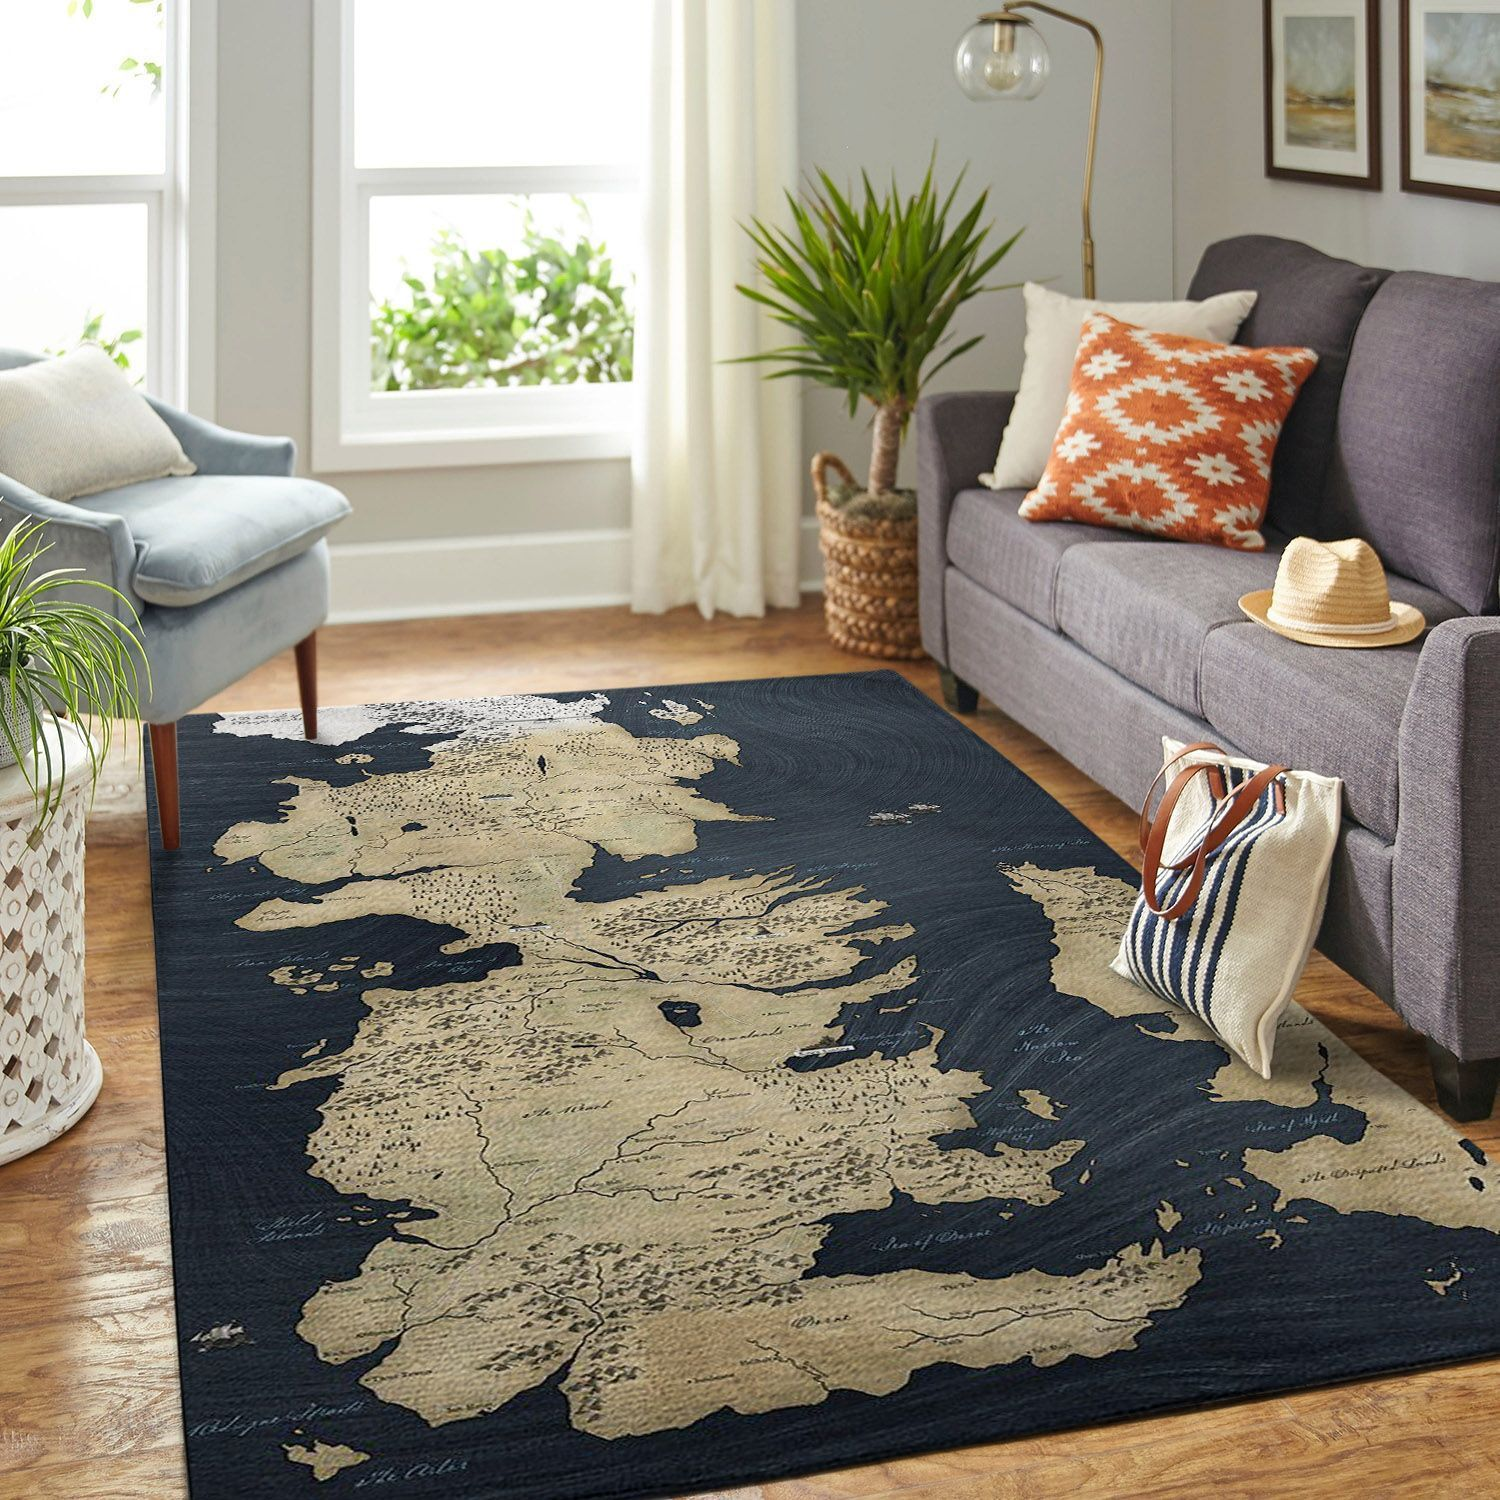 Amazon Game Of Thrones Living Room Area No6093 Rug